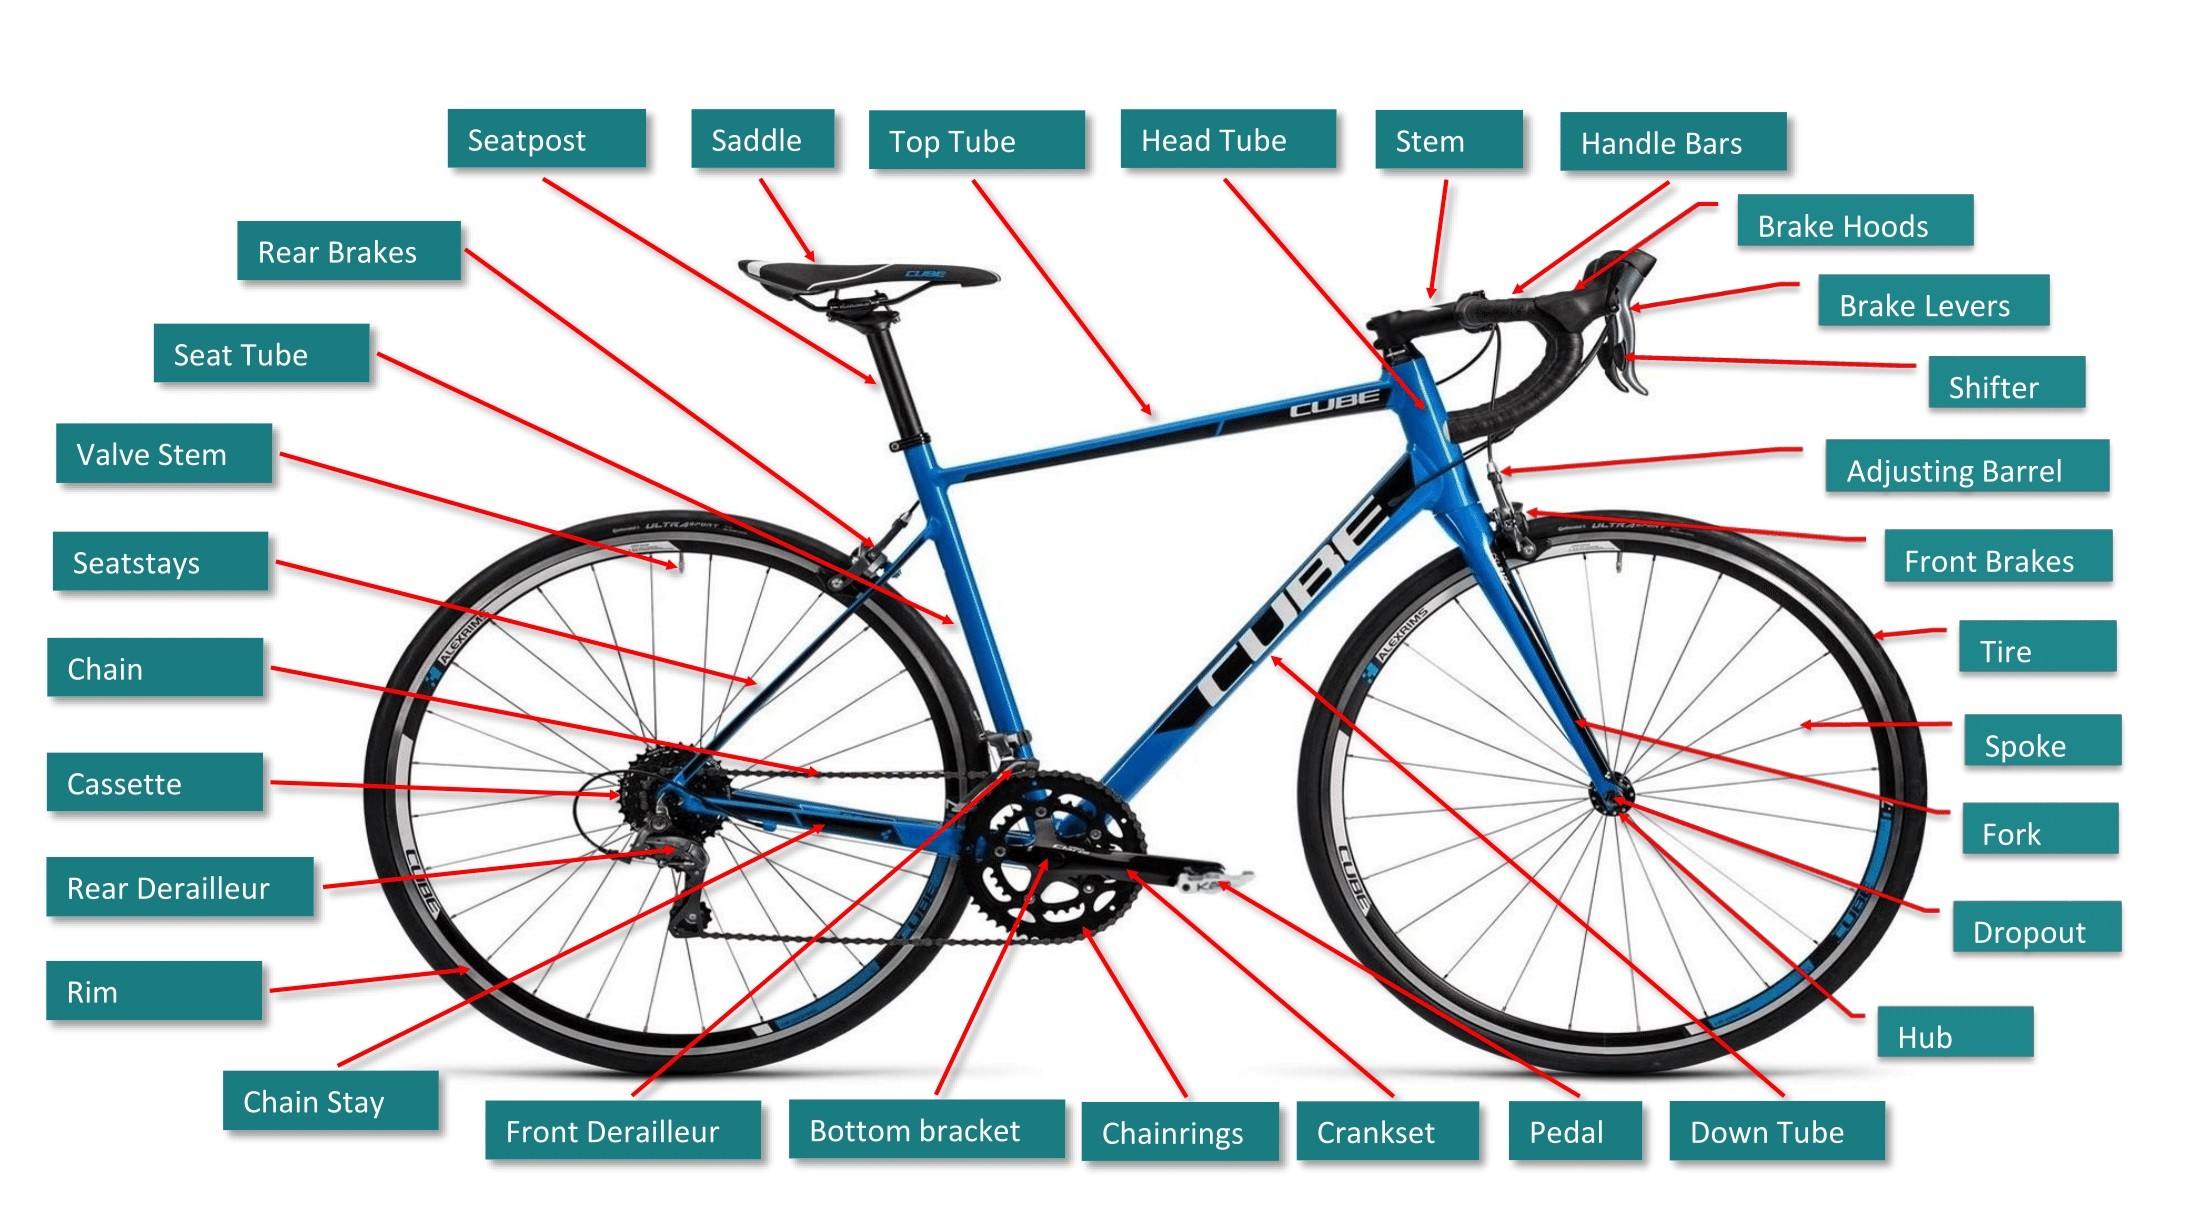 Complete Guide To All Road Bike Parts We Are The Cyclists